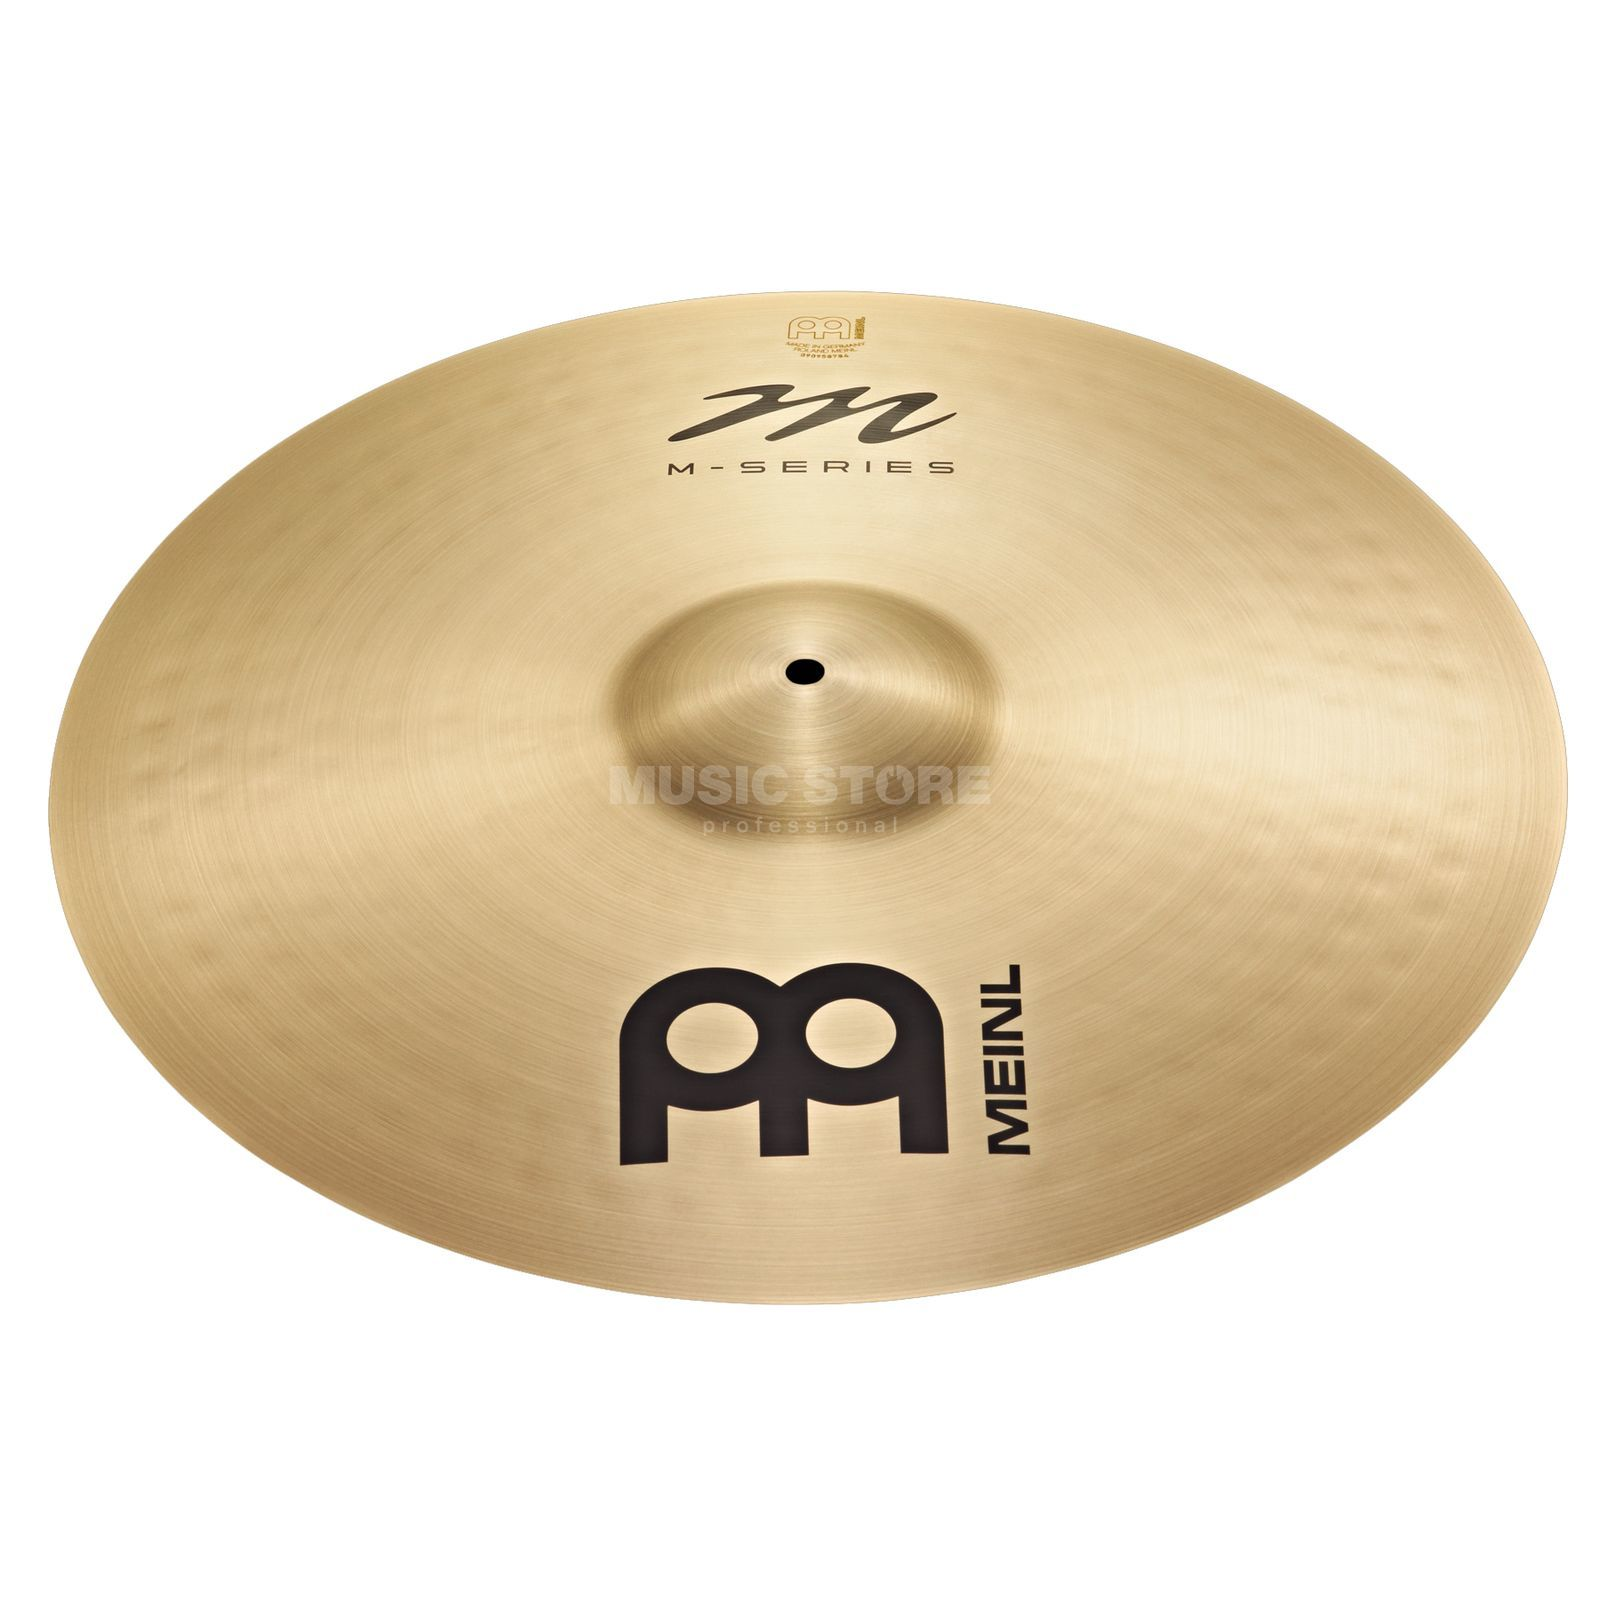 Meinl M-Series Heavy Ride MS20HR Produktbillede